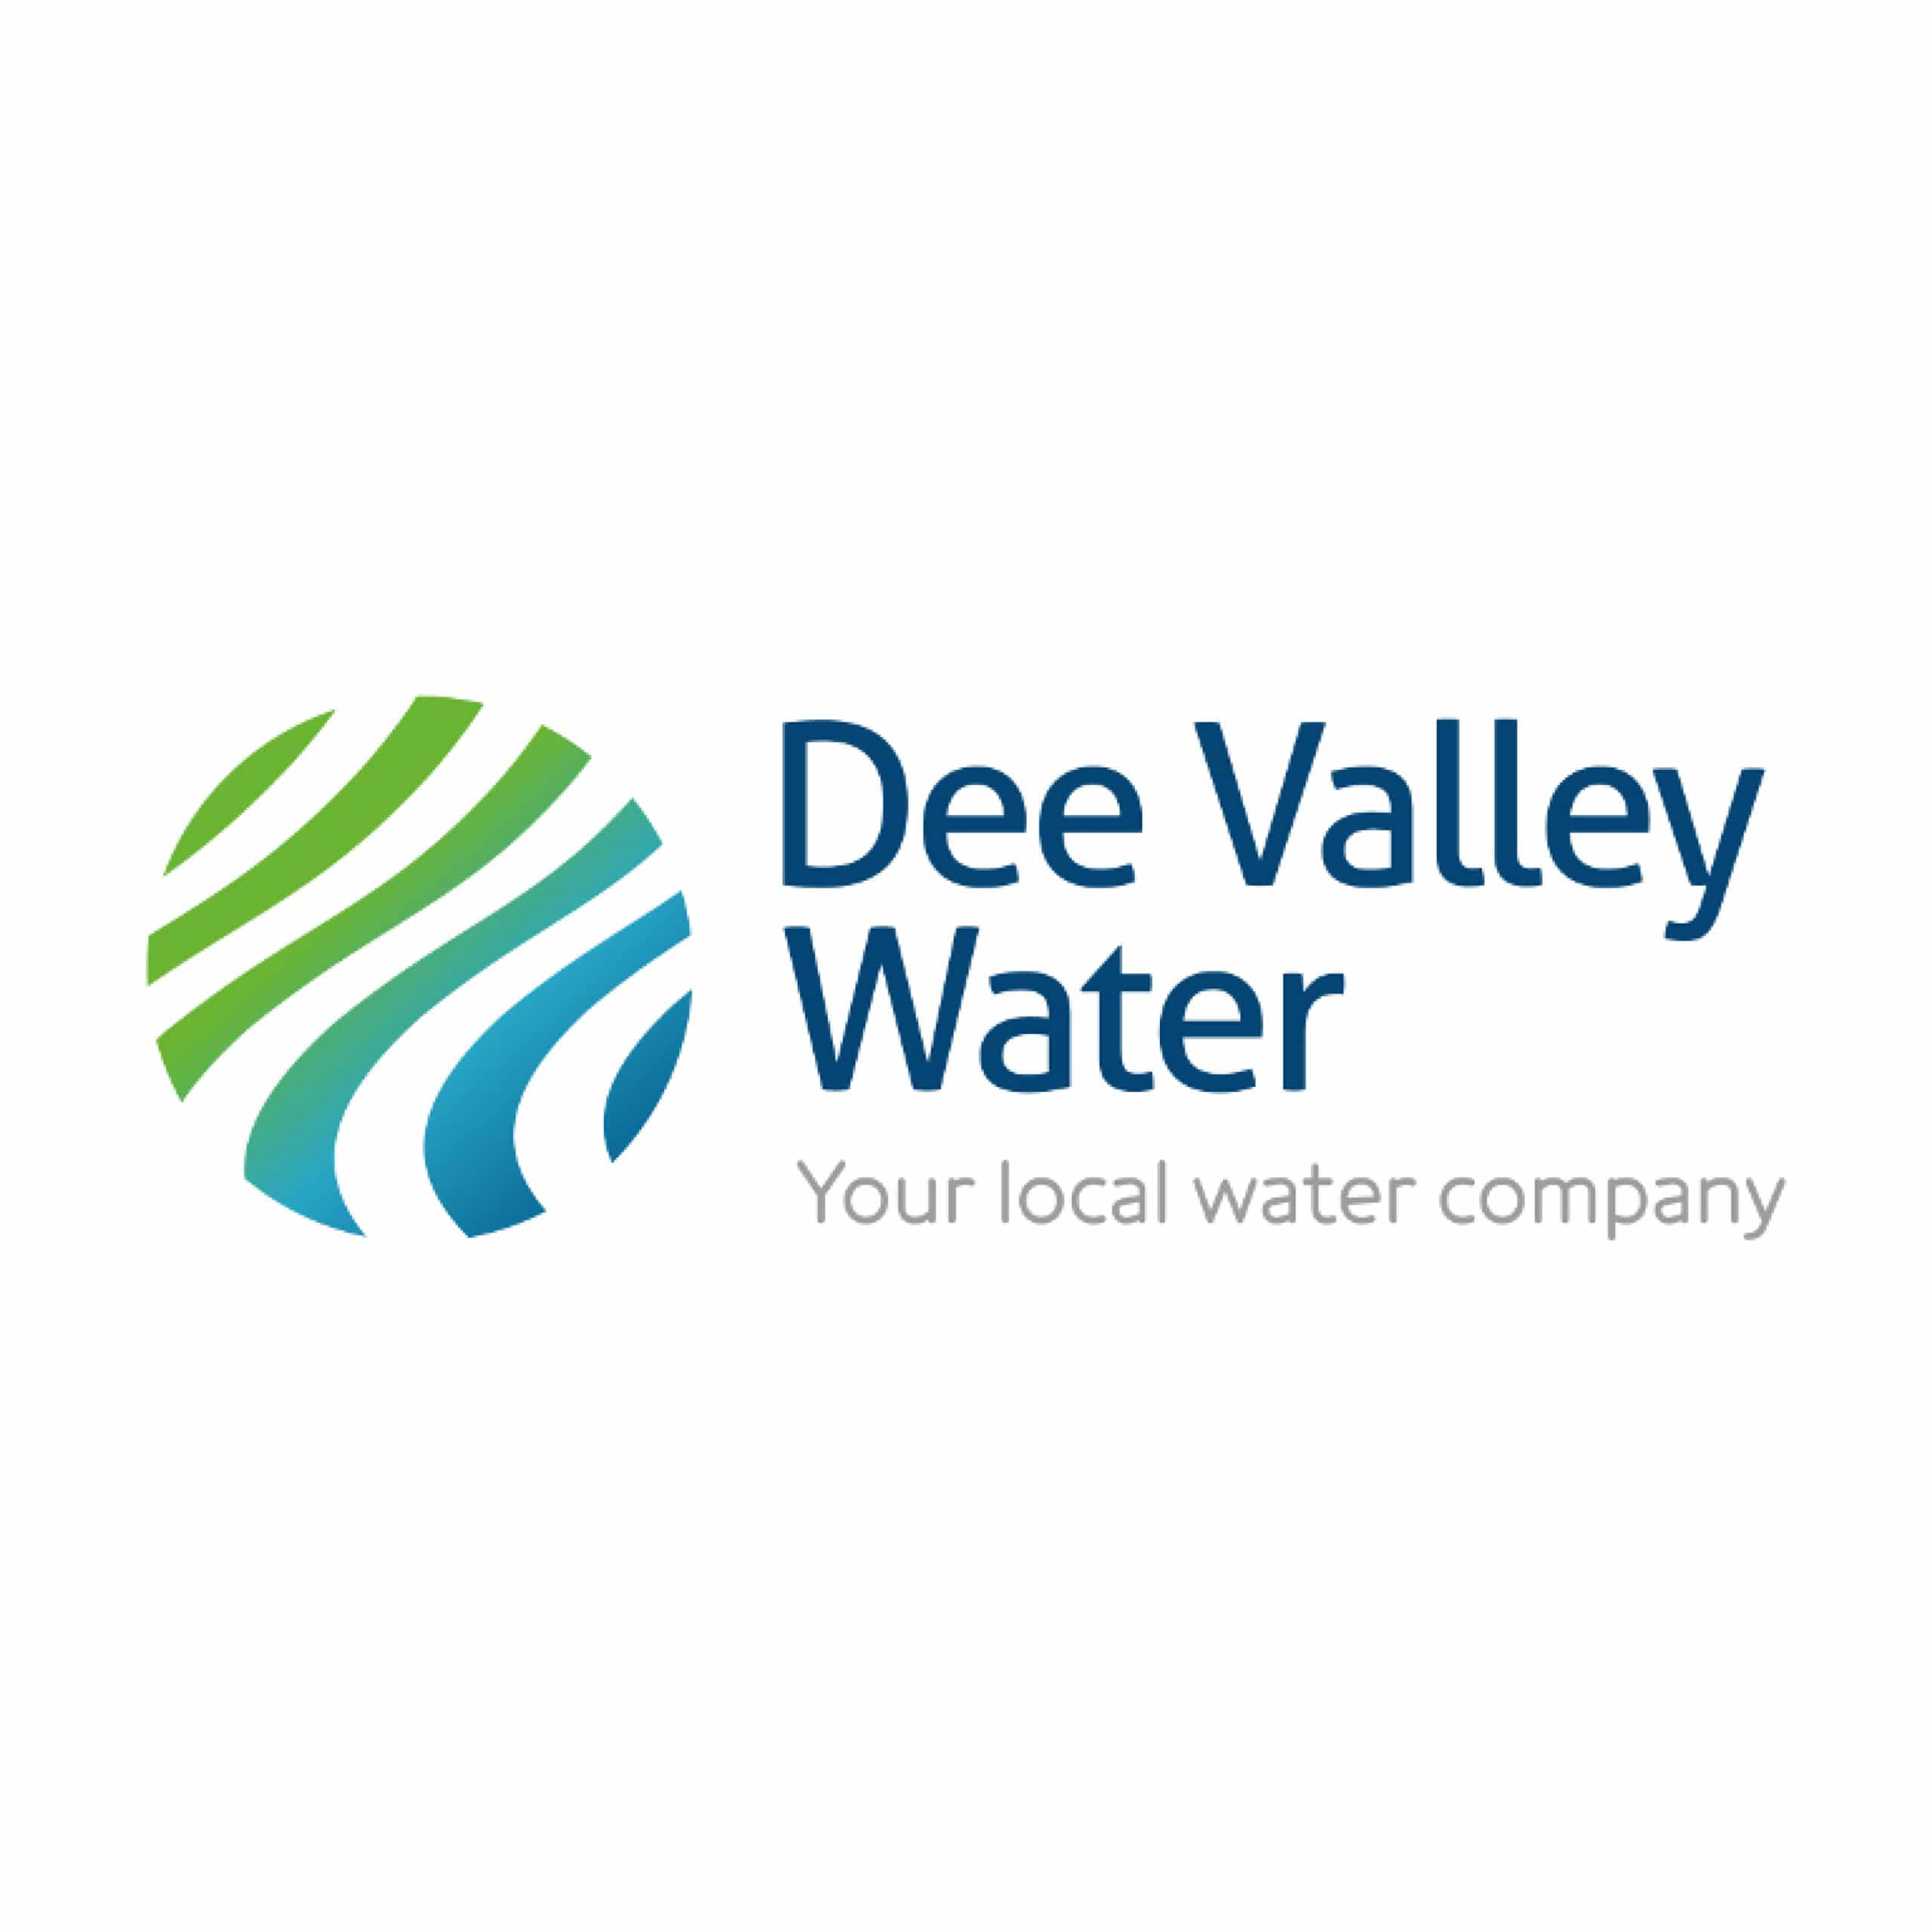 Fineline Print and Web | North Wales | Portfolio | Dee Valley Water